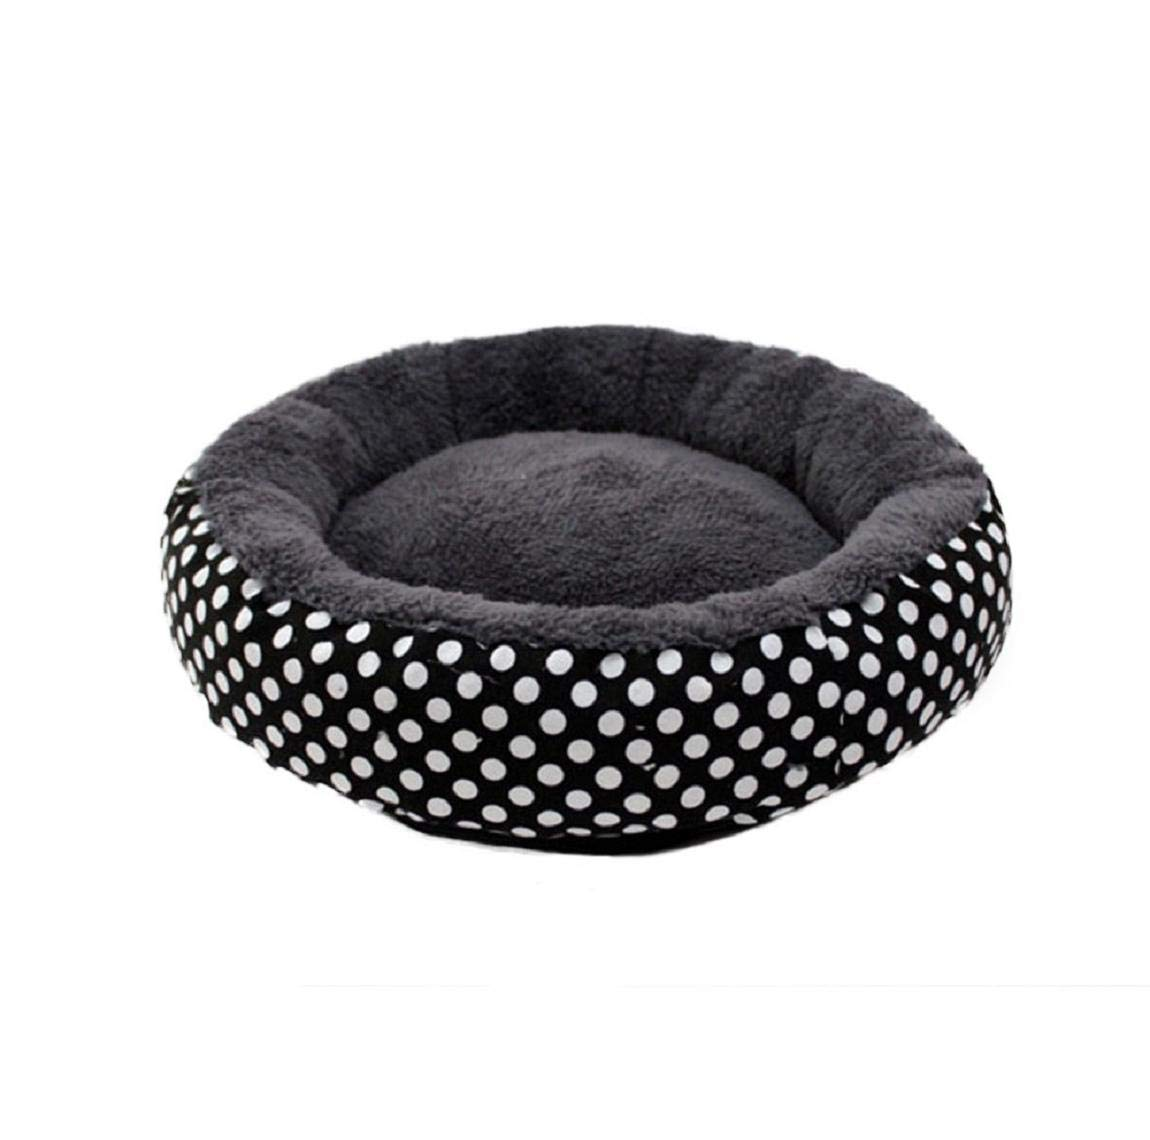 Black Barlingrock Pet Cat Dog Puppy Bed, Round-Shape Drop Ball Self-Warming Winter Warm Cushion Durable Canvas Washable Breathable Sleeping Pad Nest Mat Pad Kennel for Teddy Small Dog Kitten